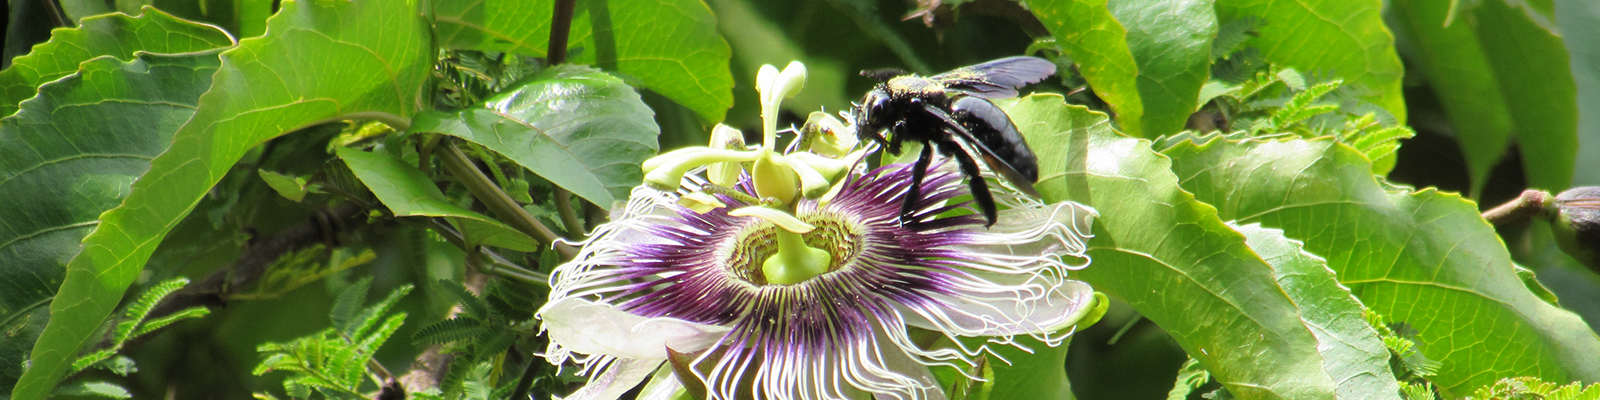 Photo from the First Photography Contest – PPGADR – Your Look on the Environment. The Flirt. Leticia Bolonha Lucati. A black bumble bee with golden pollen on the surface is pollinizing a white-and-purple passion fruit flower.